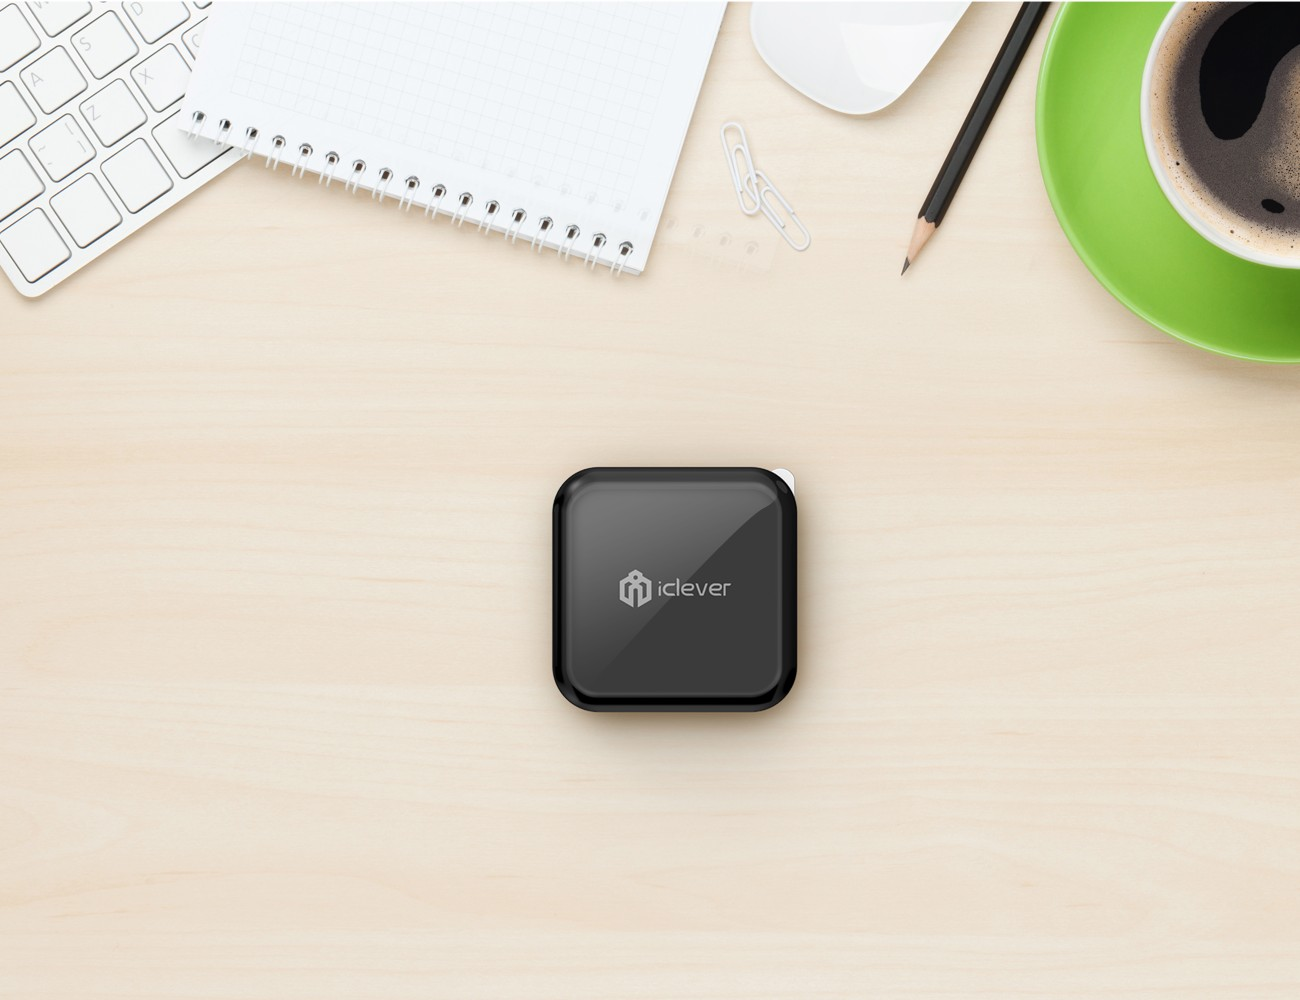 iclever-boostcube-quick-charge-3-0-05